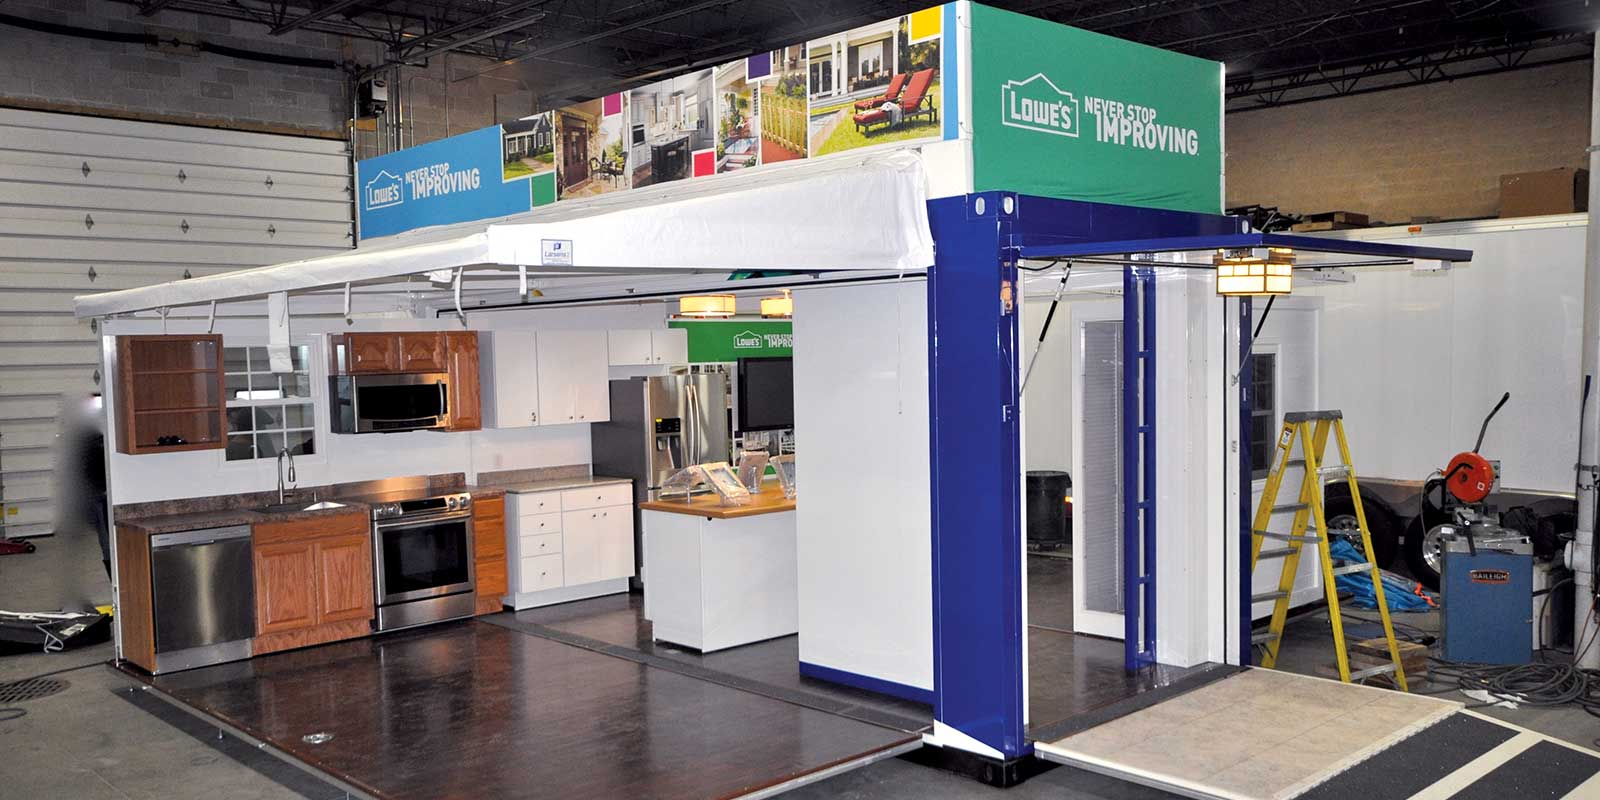 DEMOUNTABLE CONTAINER / POP UP RETAIL